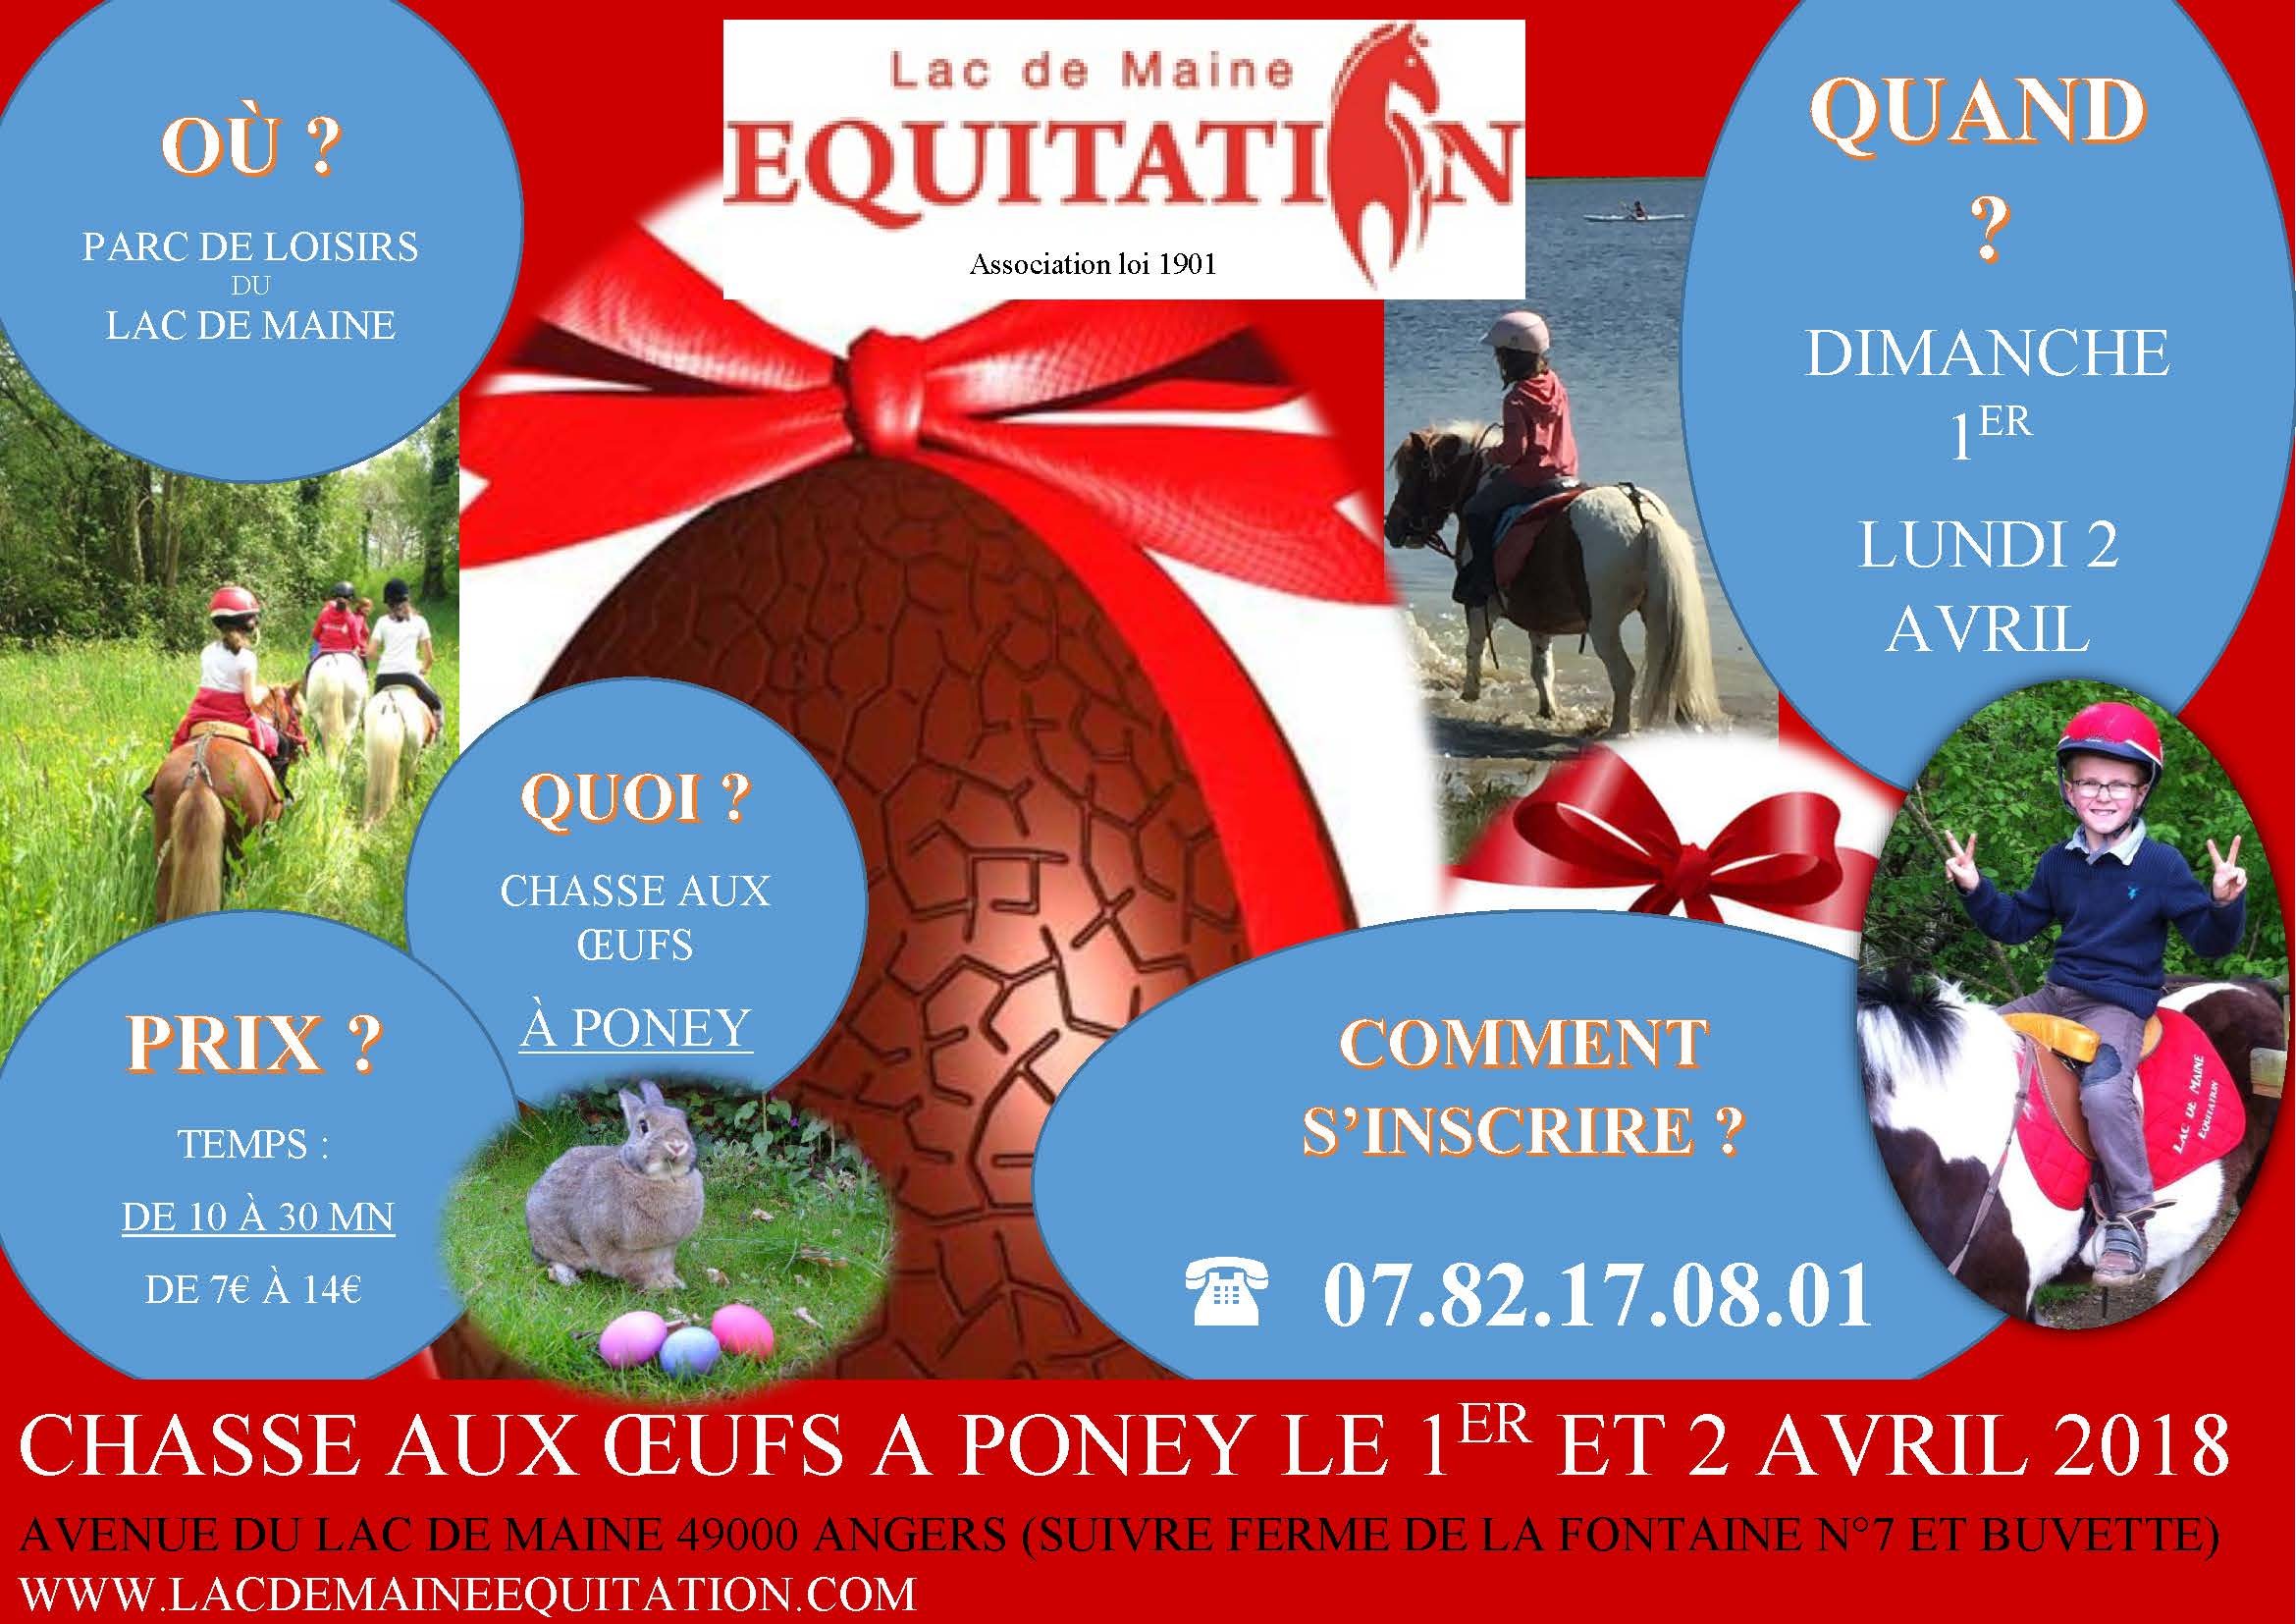 FLYER PAQUE 27 image